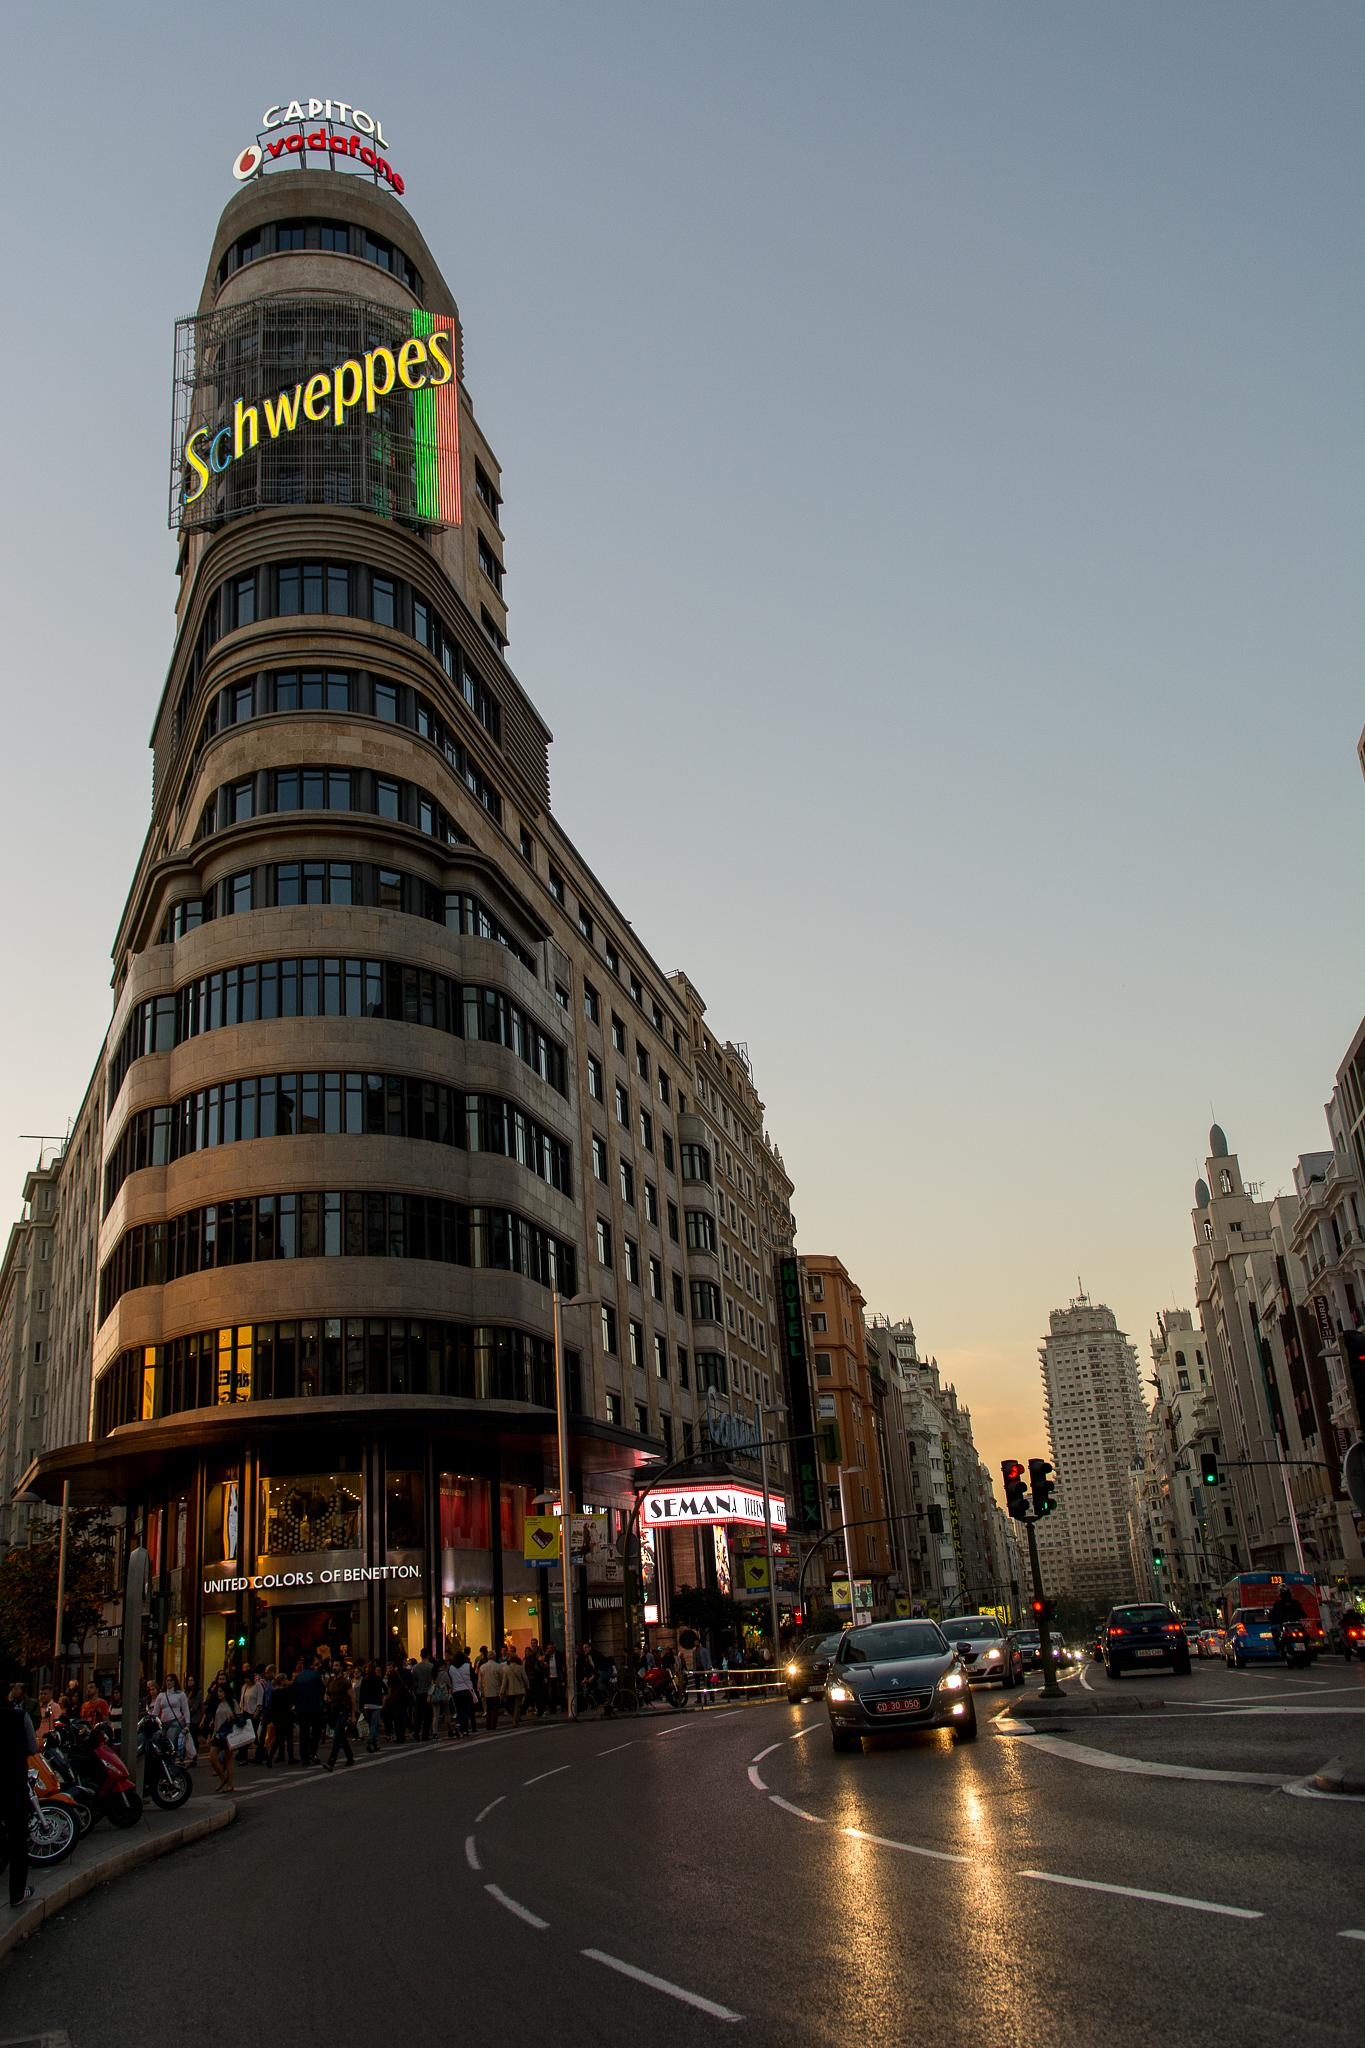 evening in Madrid by Hezi Shohat